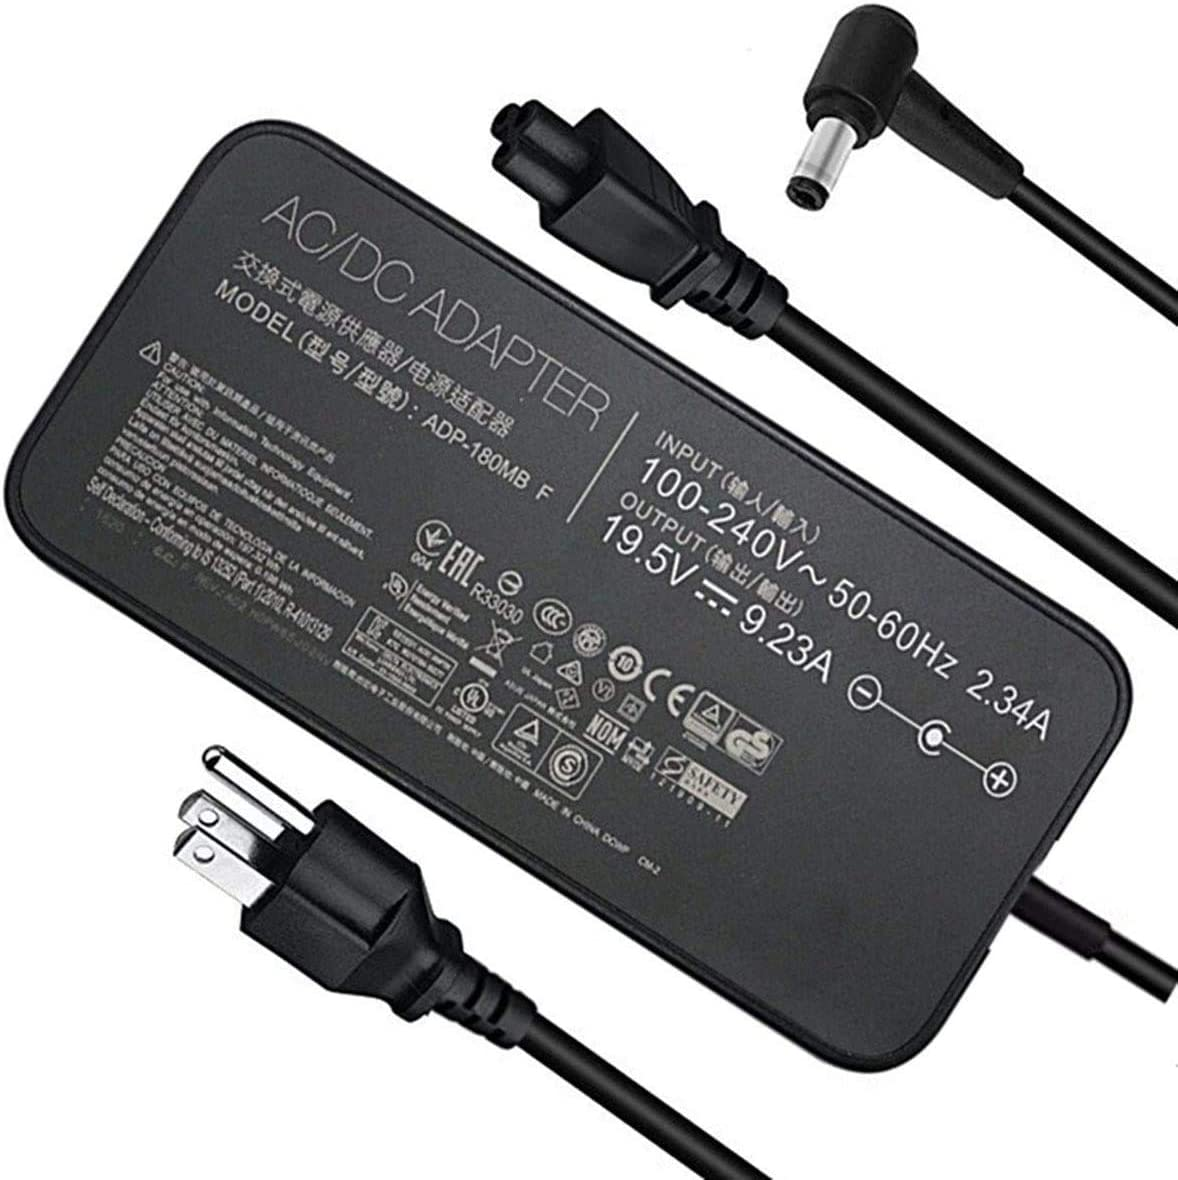 New 19.5V 9.23A 180W AC Charger for ASUS GL703VM,GL503V,GL503VD,GL503VM,FX504GM,G53S,G53SX,G53J,G53JW,G73S ROG G750JW-DB71 G750JW-T4087H ADP-180MB F FA180PM111 Loptop Adapter Power Supply Cord